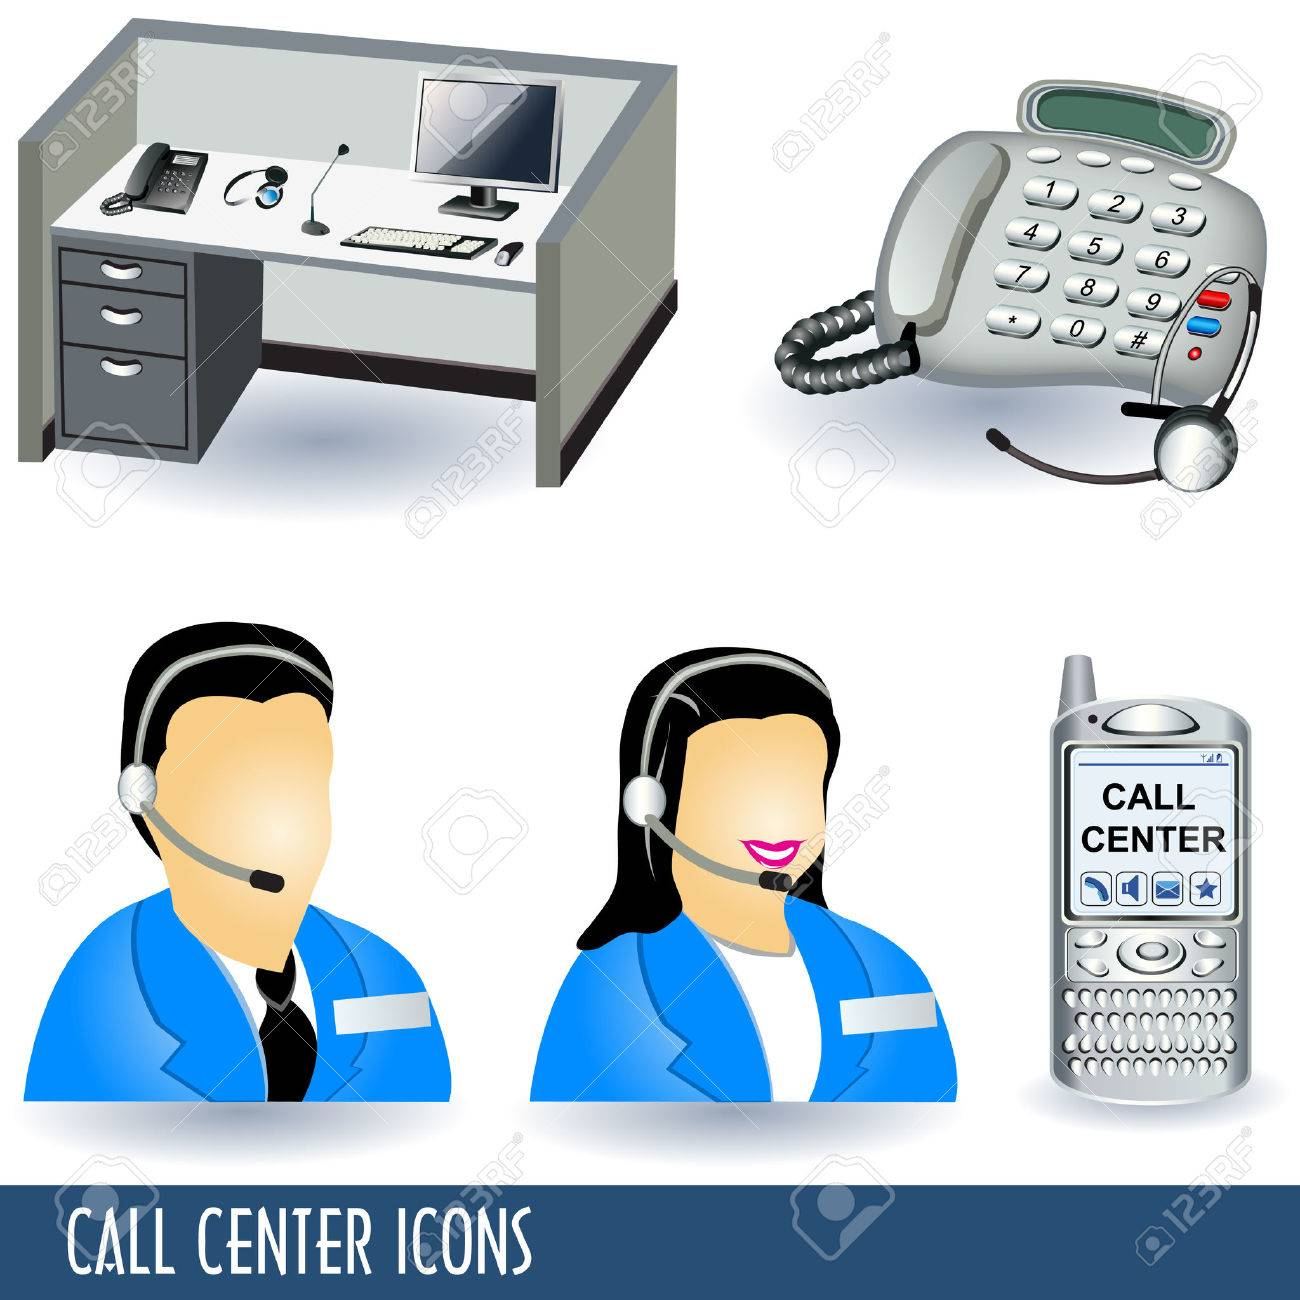 Collection of five call center illustration icons. - 7905169